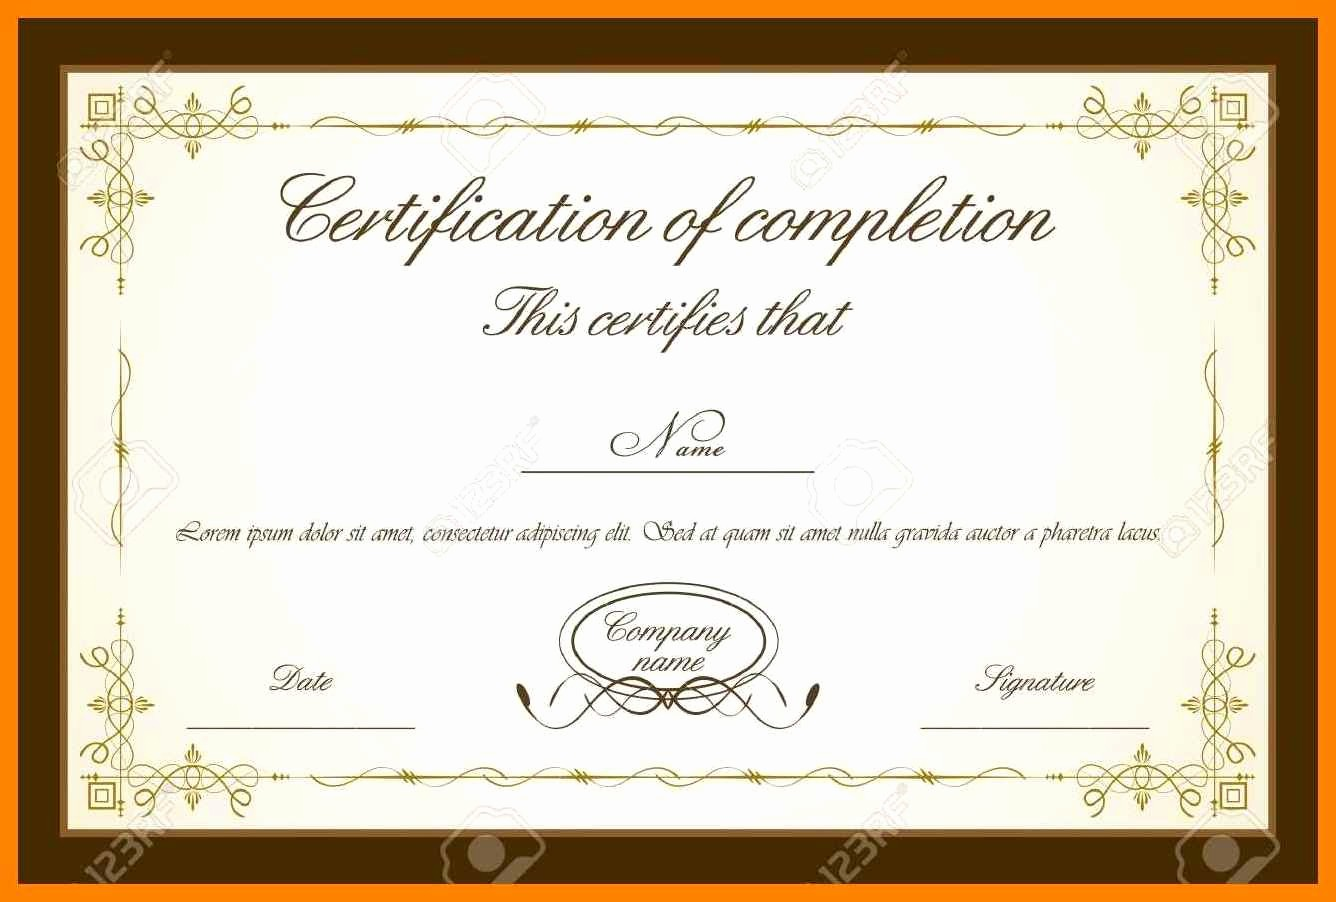 Training Certificate Template Free Download Best Of 9 Certificate Backgrounds